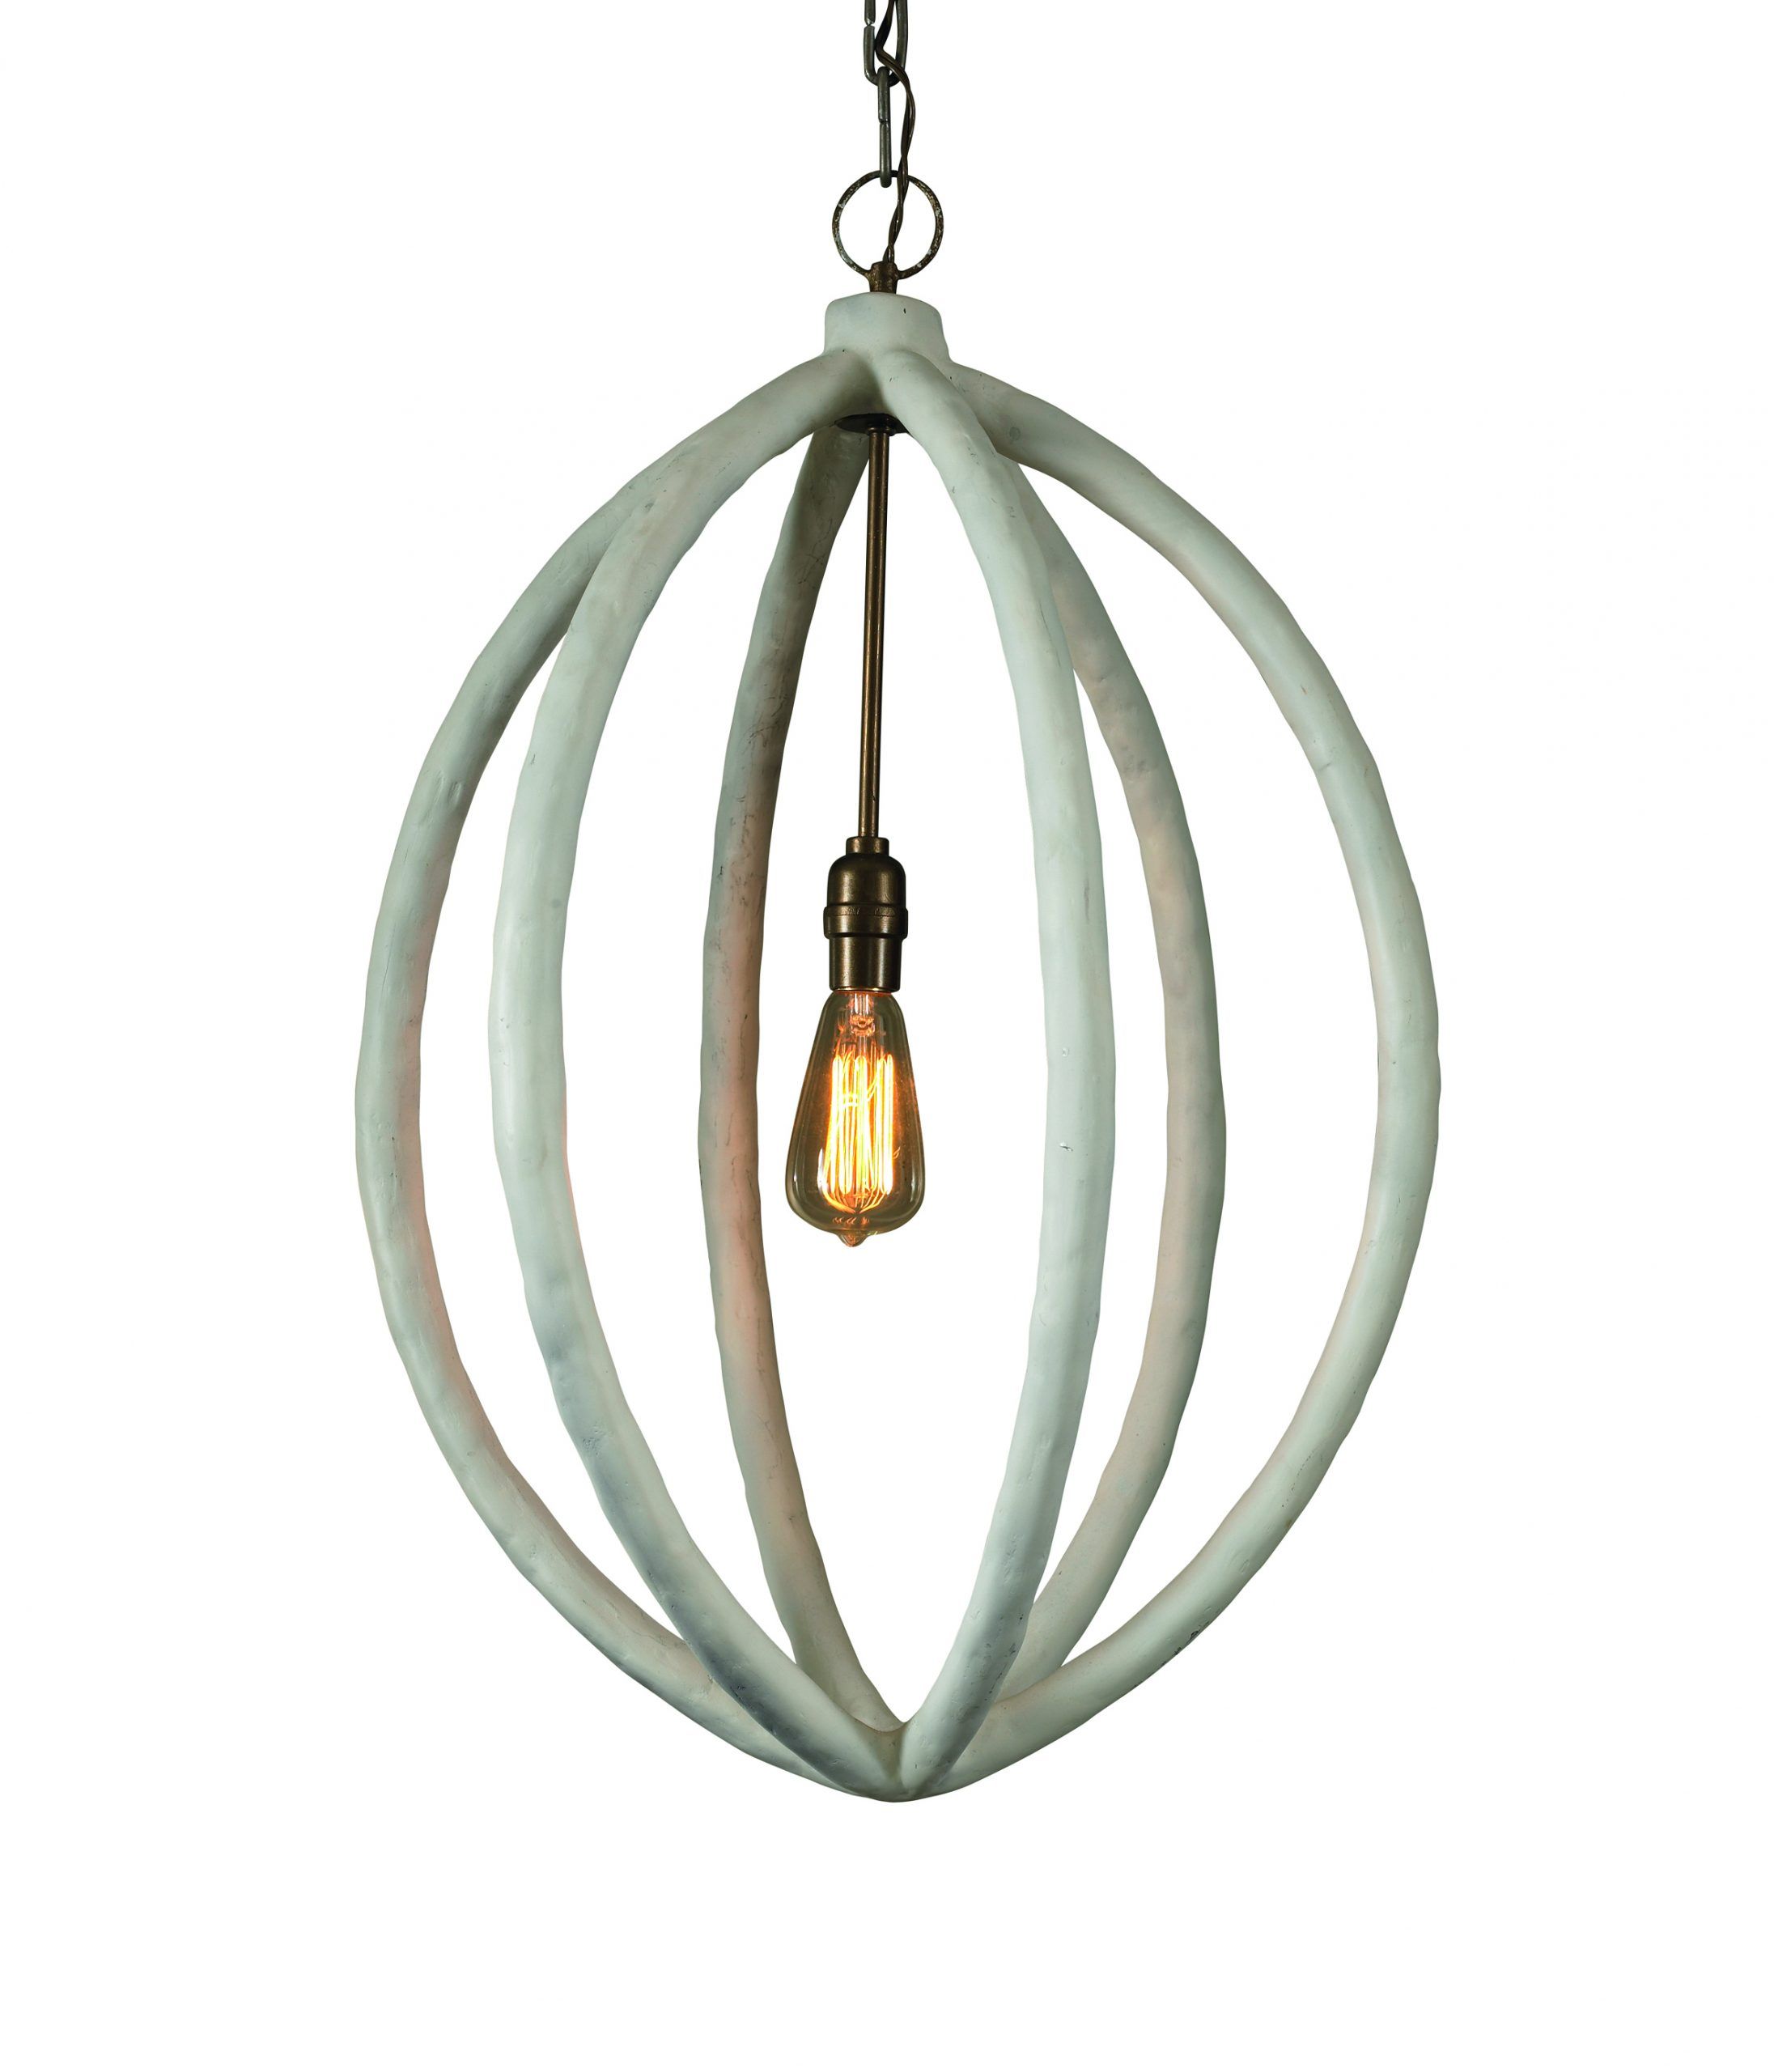 The new chandeliers which offer decorative flourishes and a